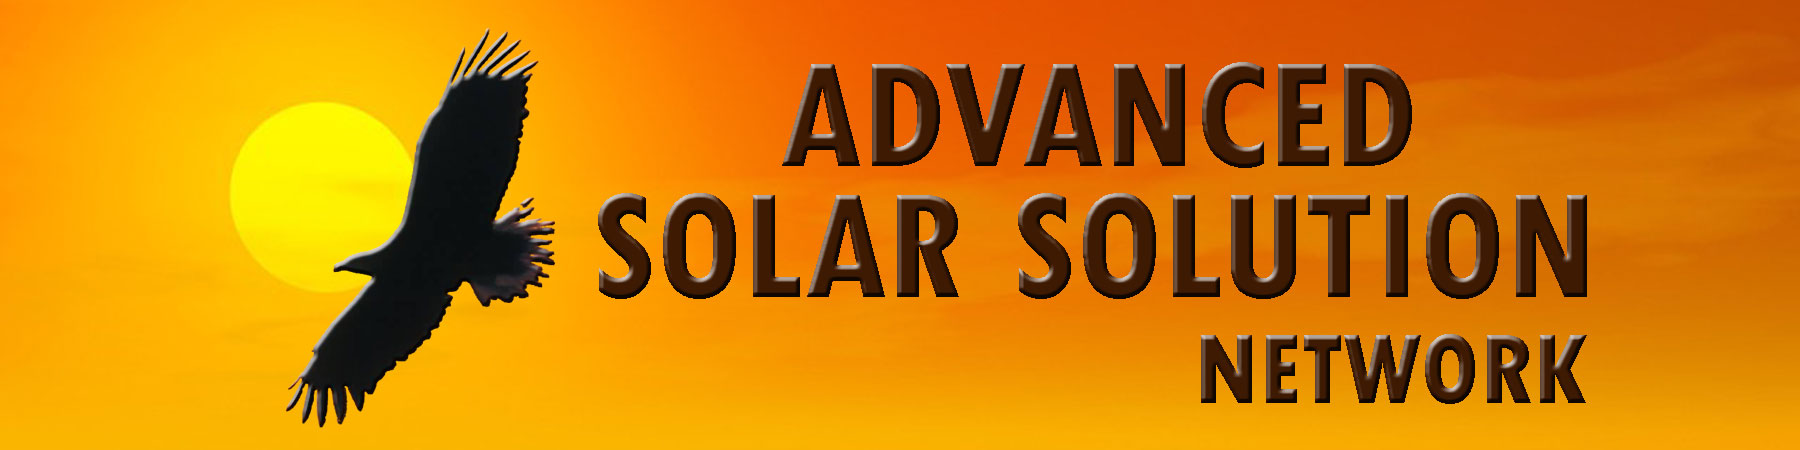 ASSN advanced solar solution